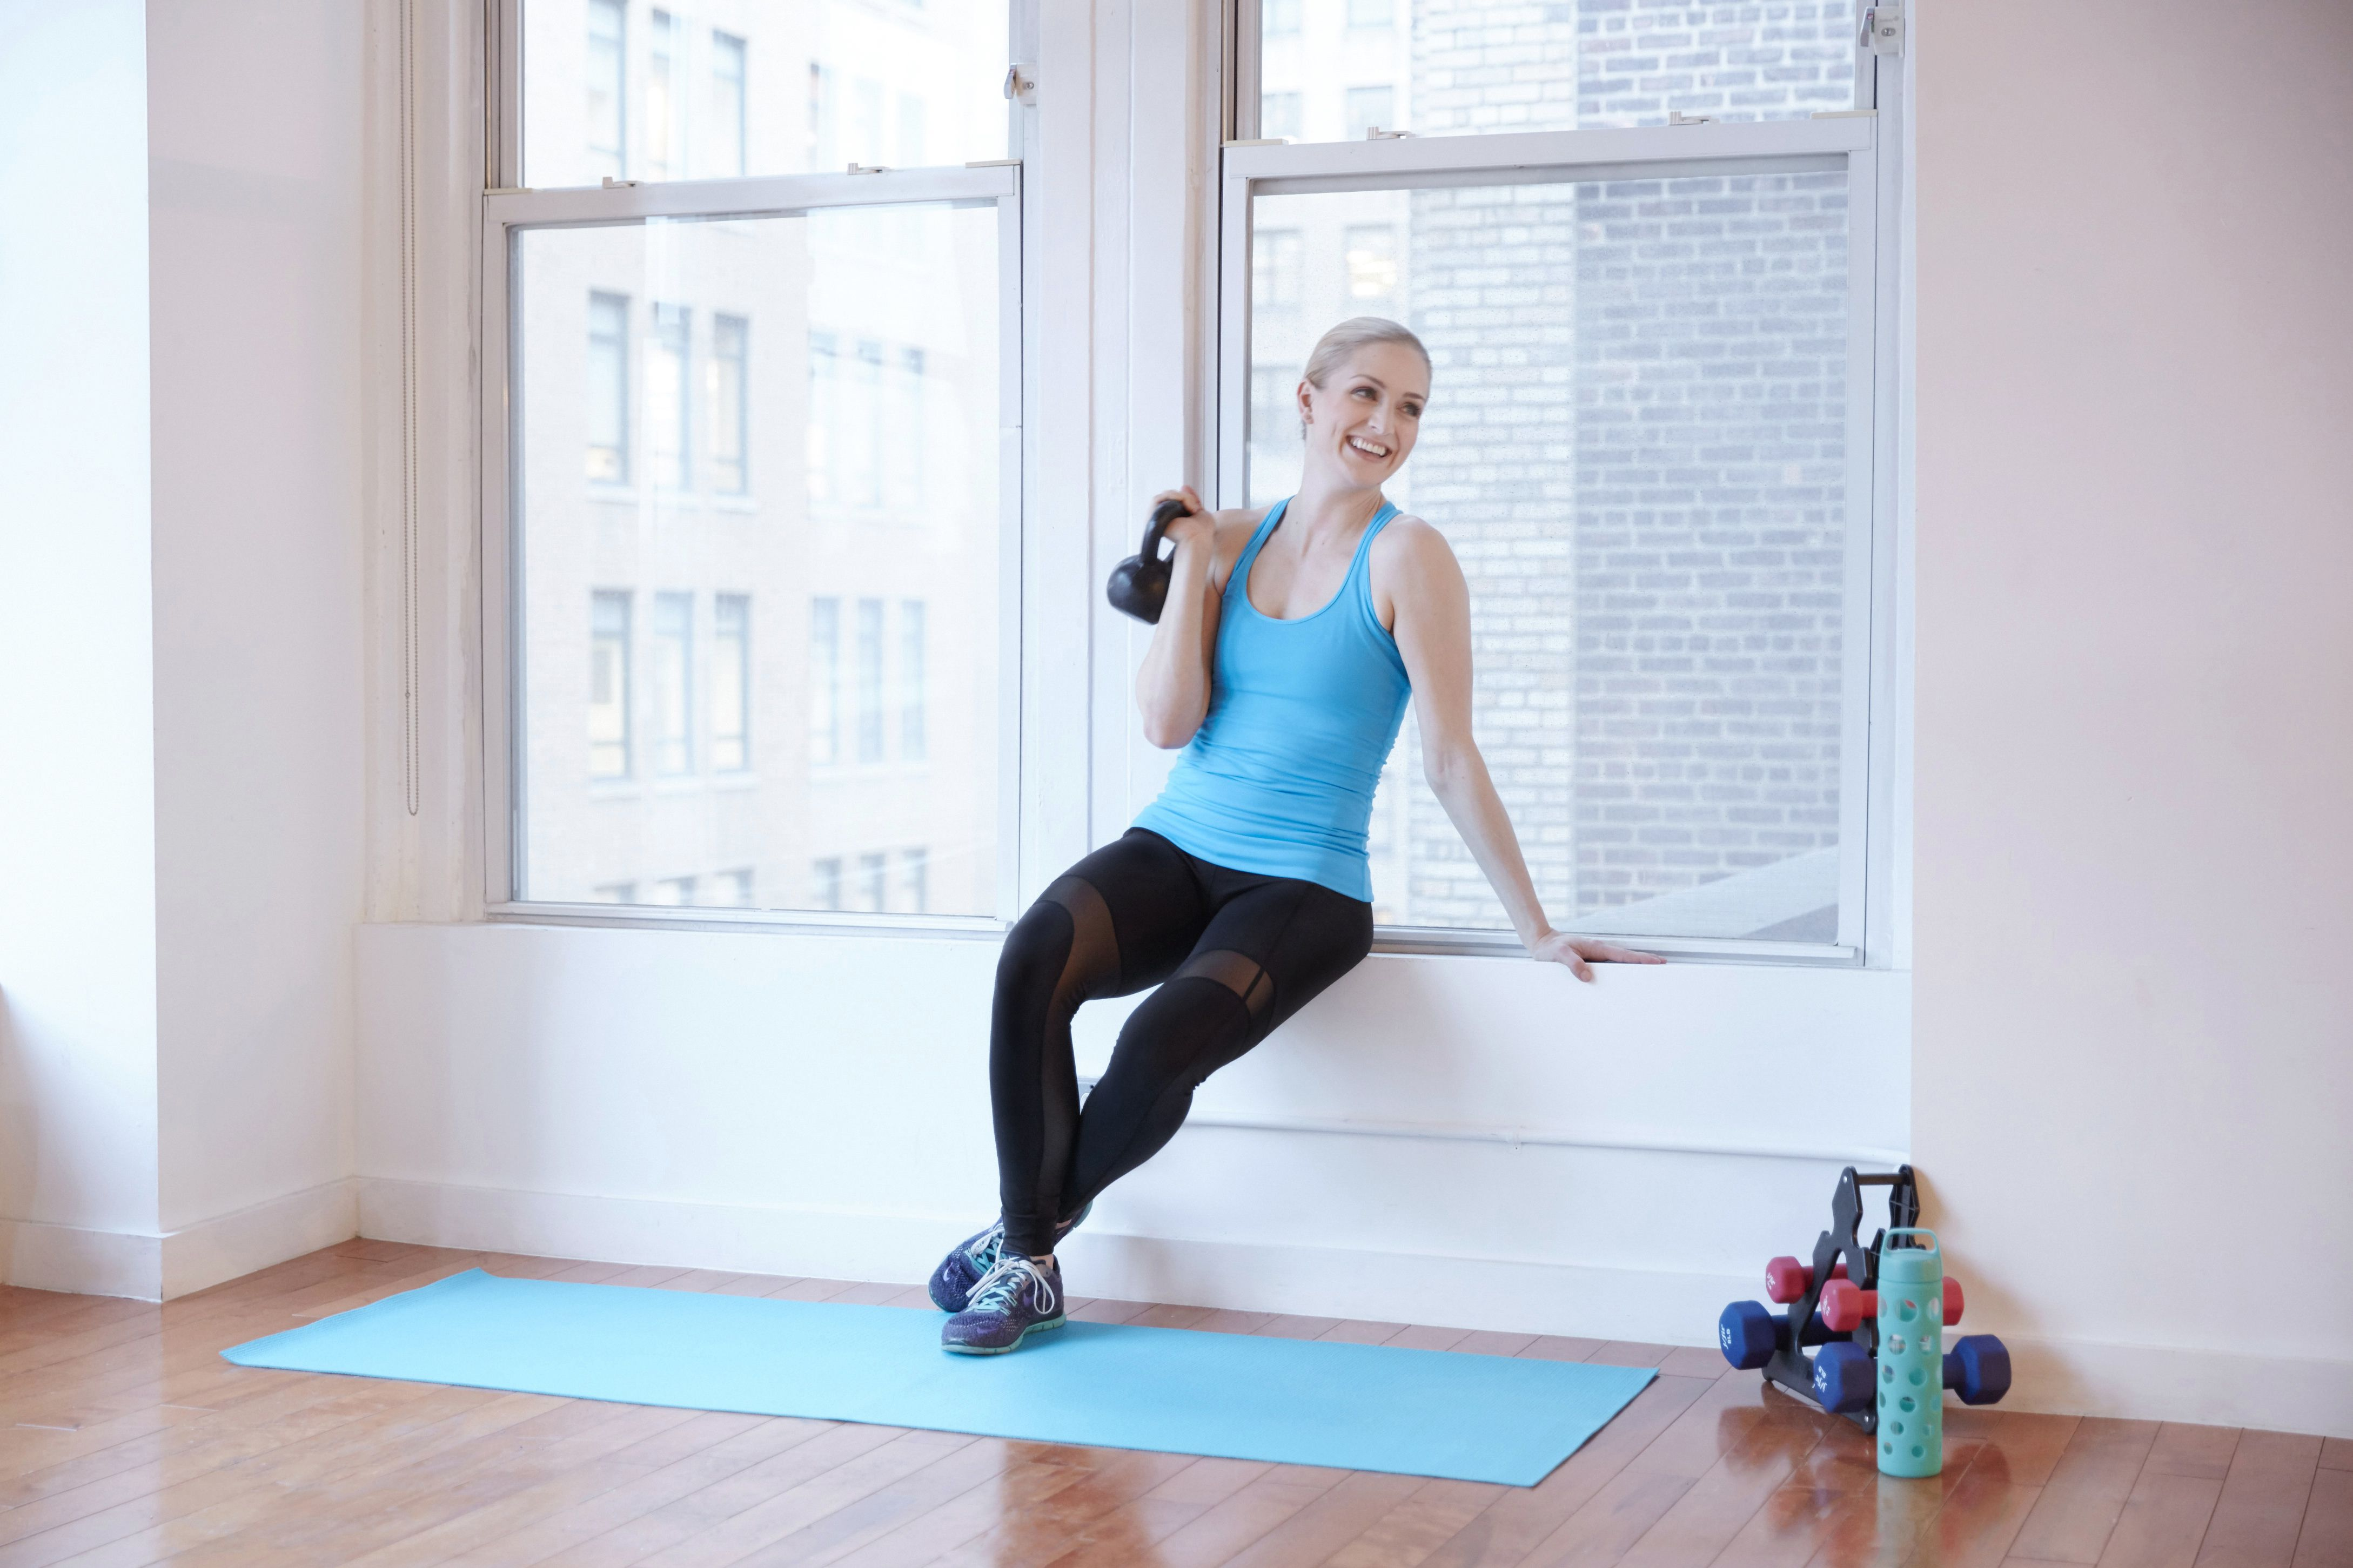 Advanced 10-Minute Metabolic Conditioning Workout